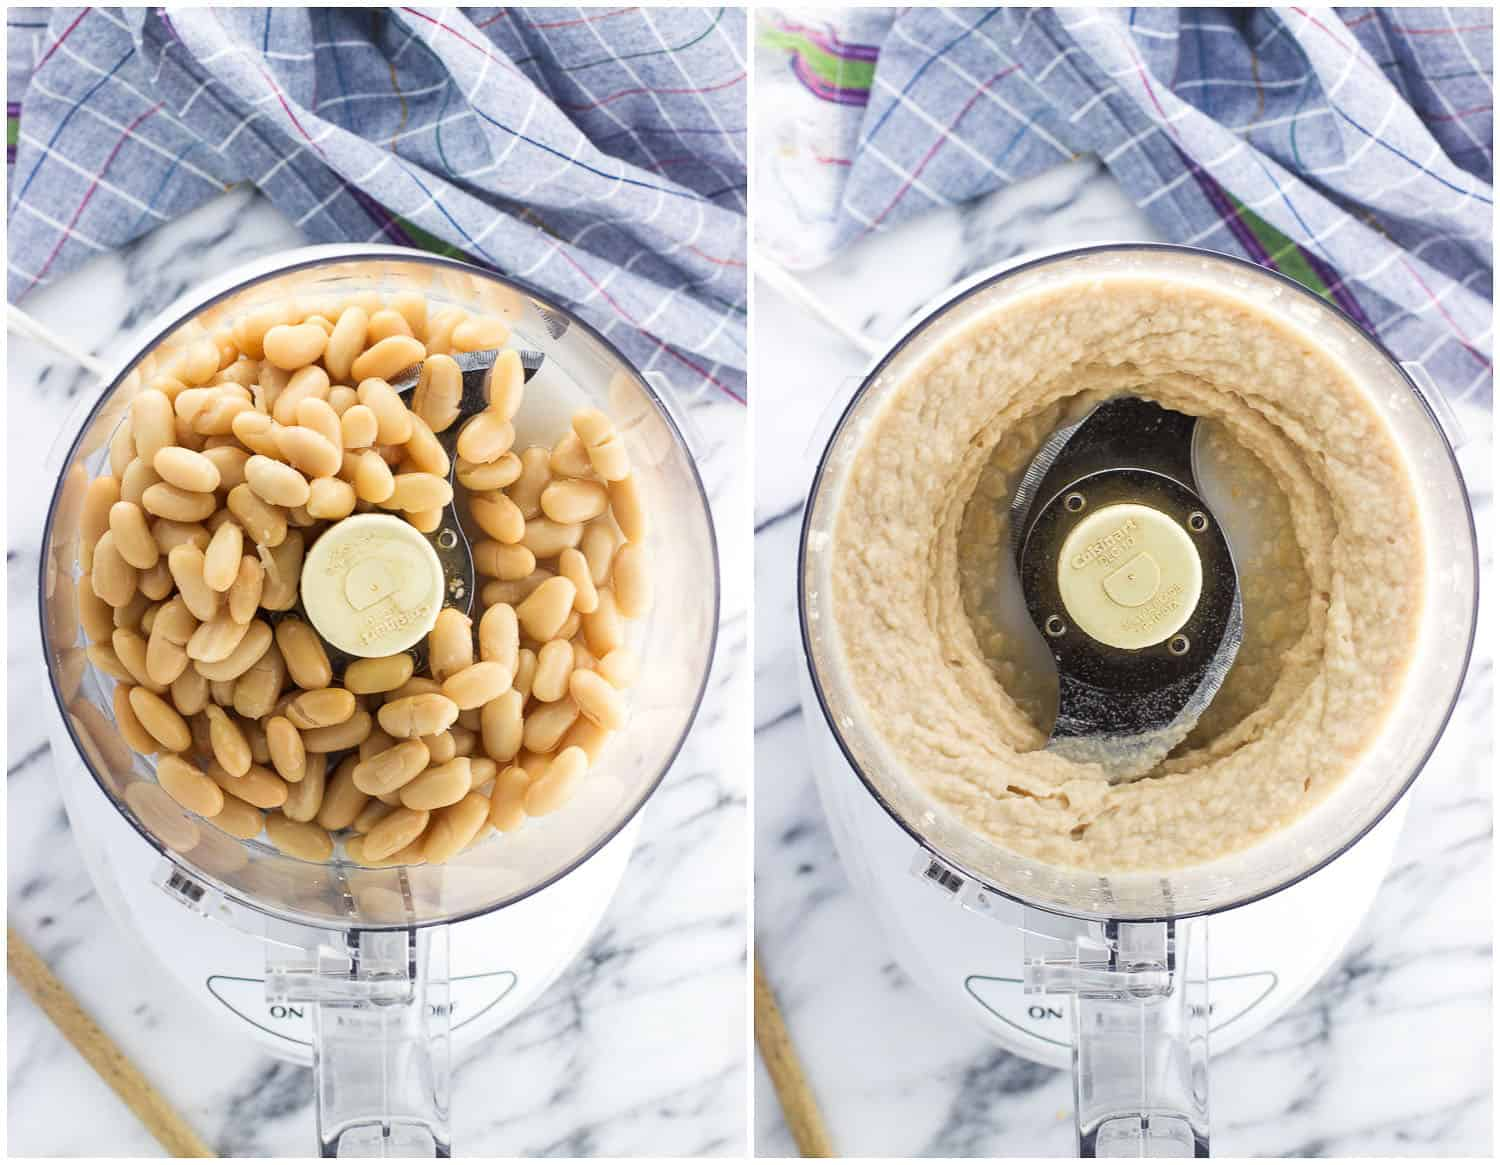 A side-by-side photo of cannellini beans in the food processor before being processed (left) and after (right)